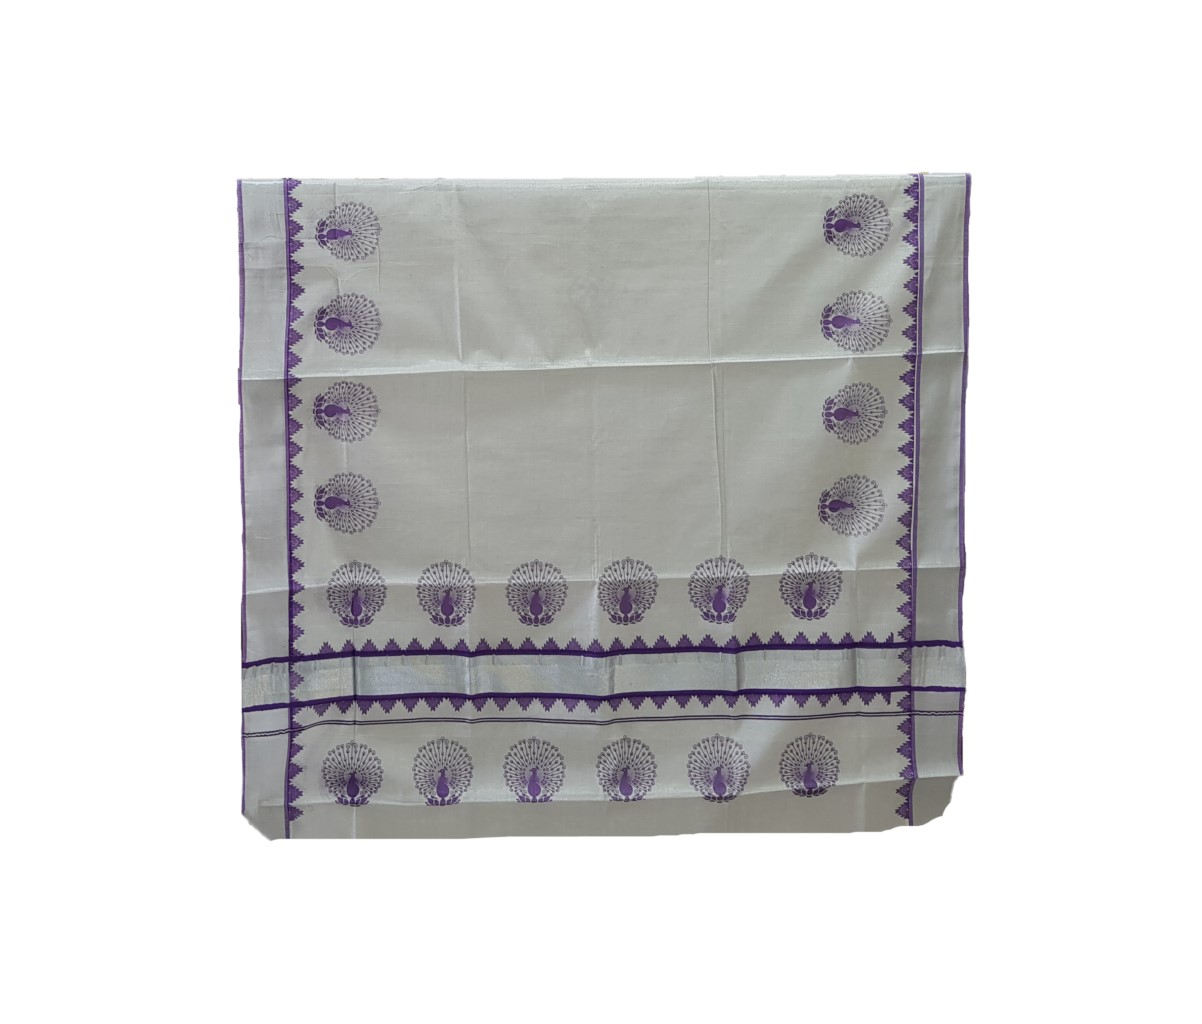 Kerala Kasavu Silver Tissue Cotton Saree with Peacock Feather Prints Silver Violet : Picture